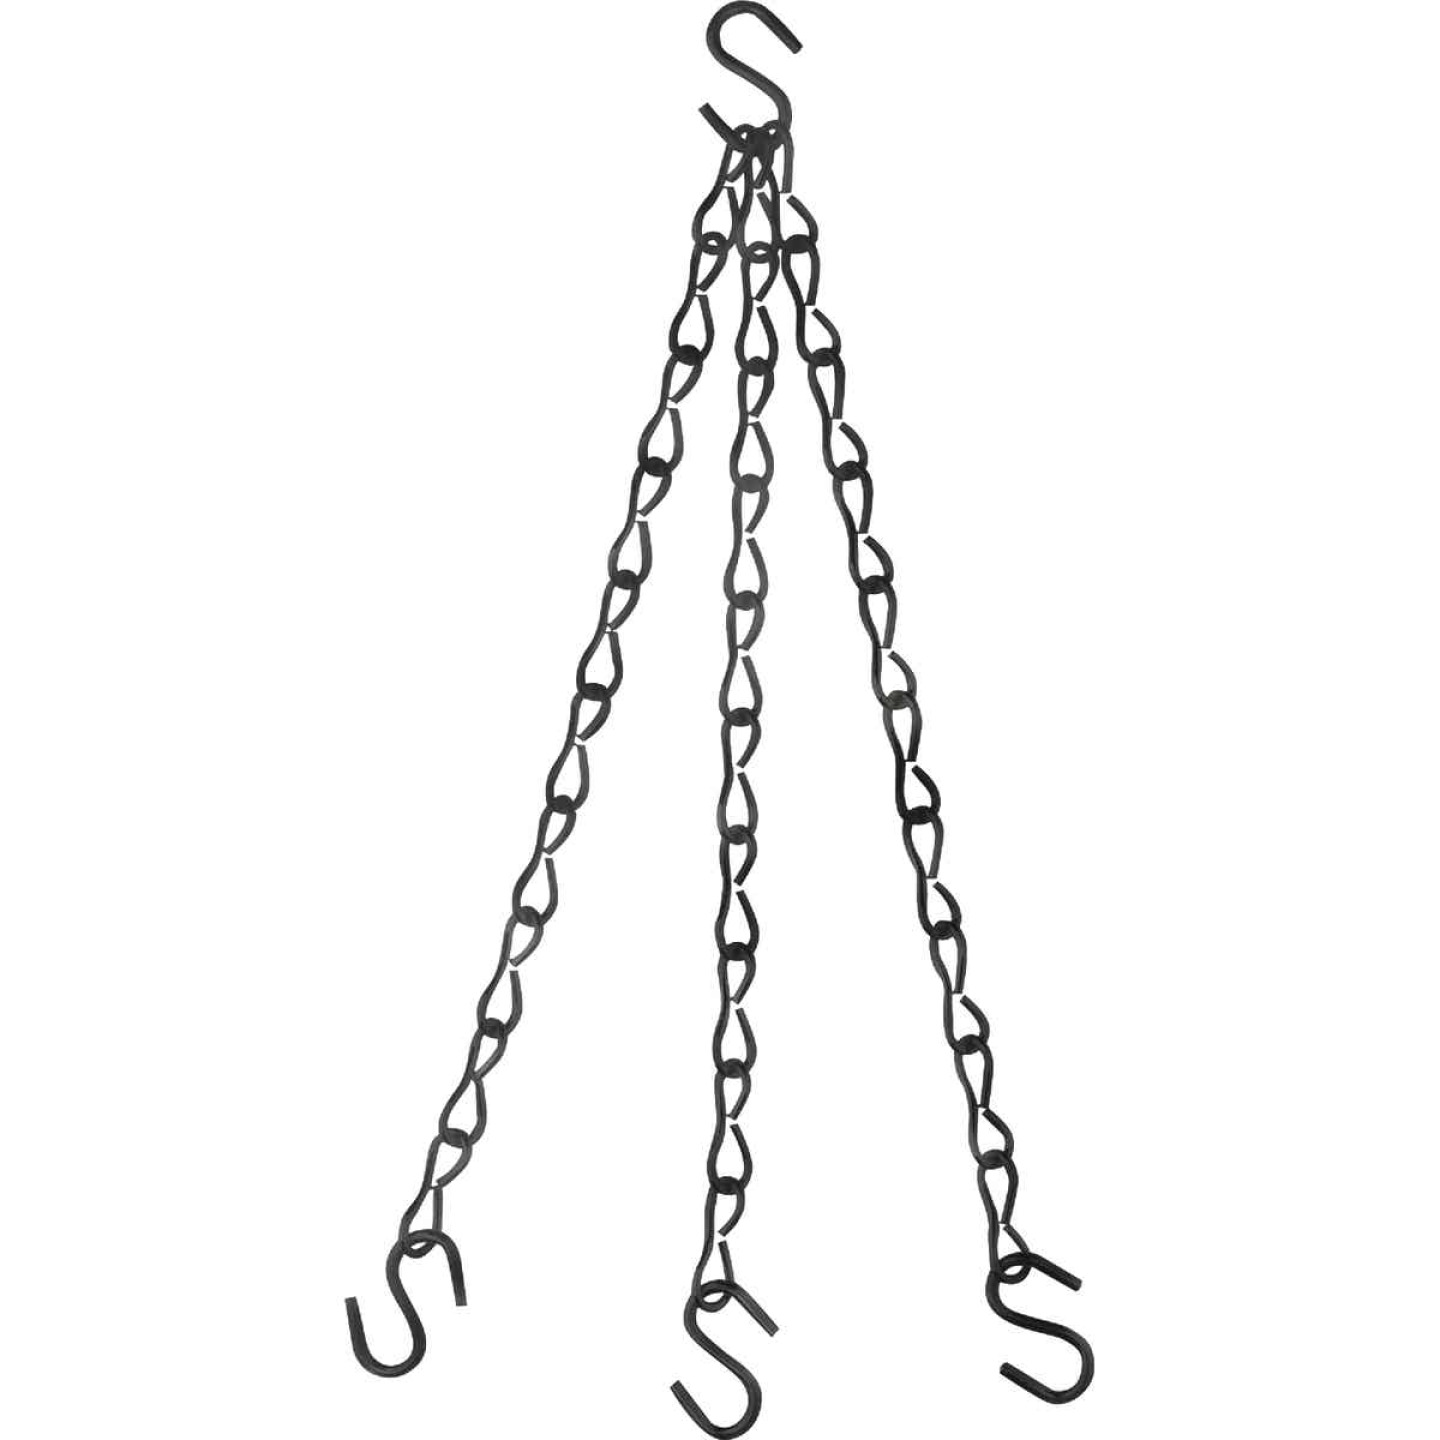 National V2663 18 In. Black Metal Hanging Plant Extension Chain Image 1